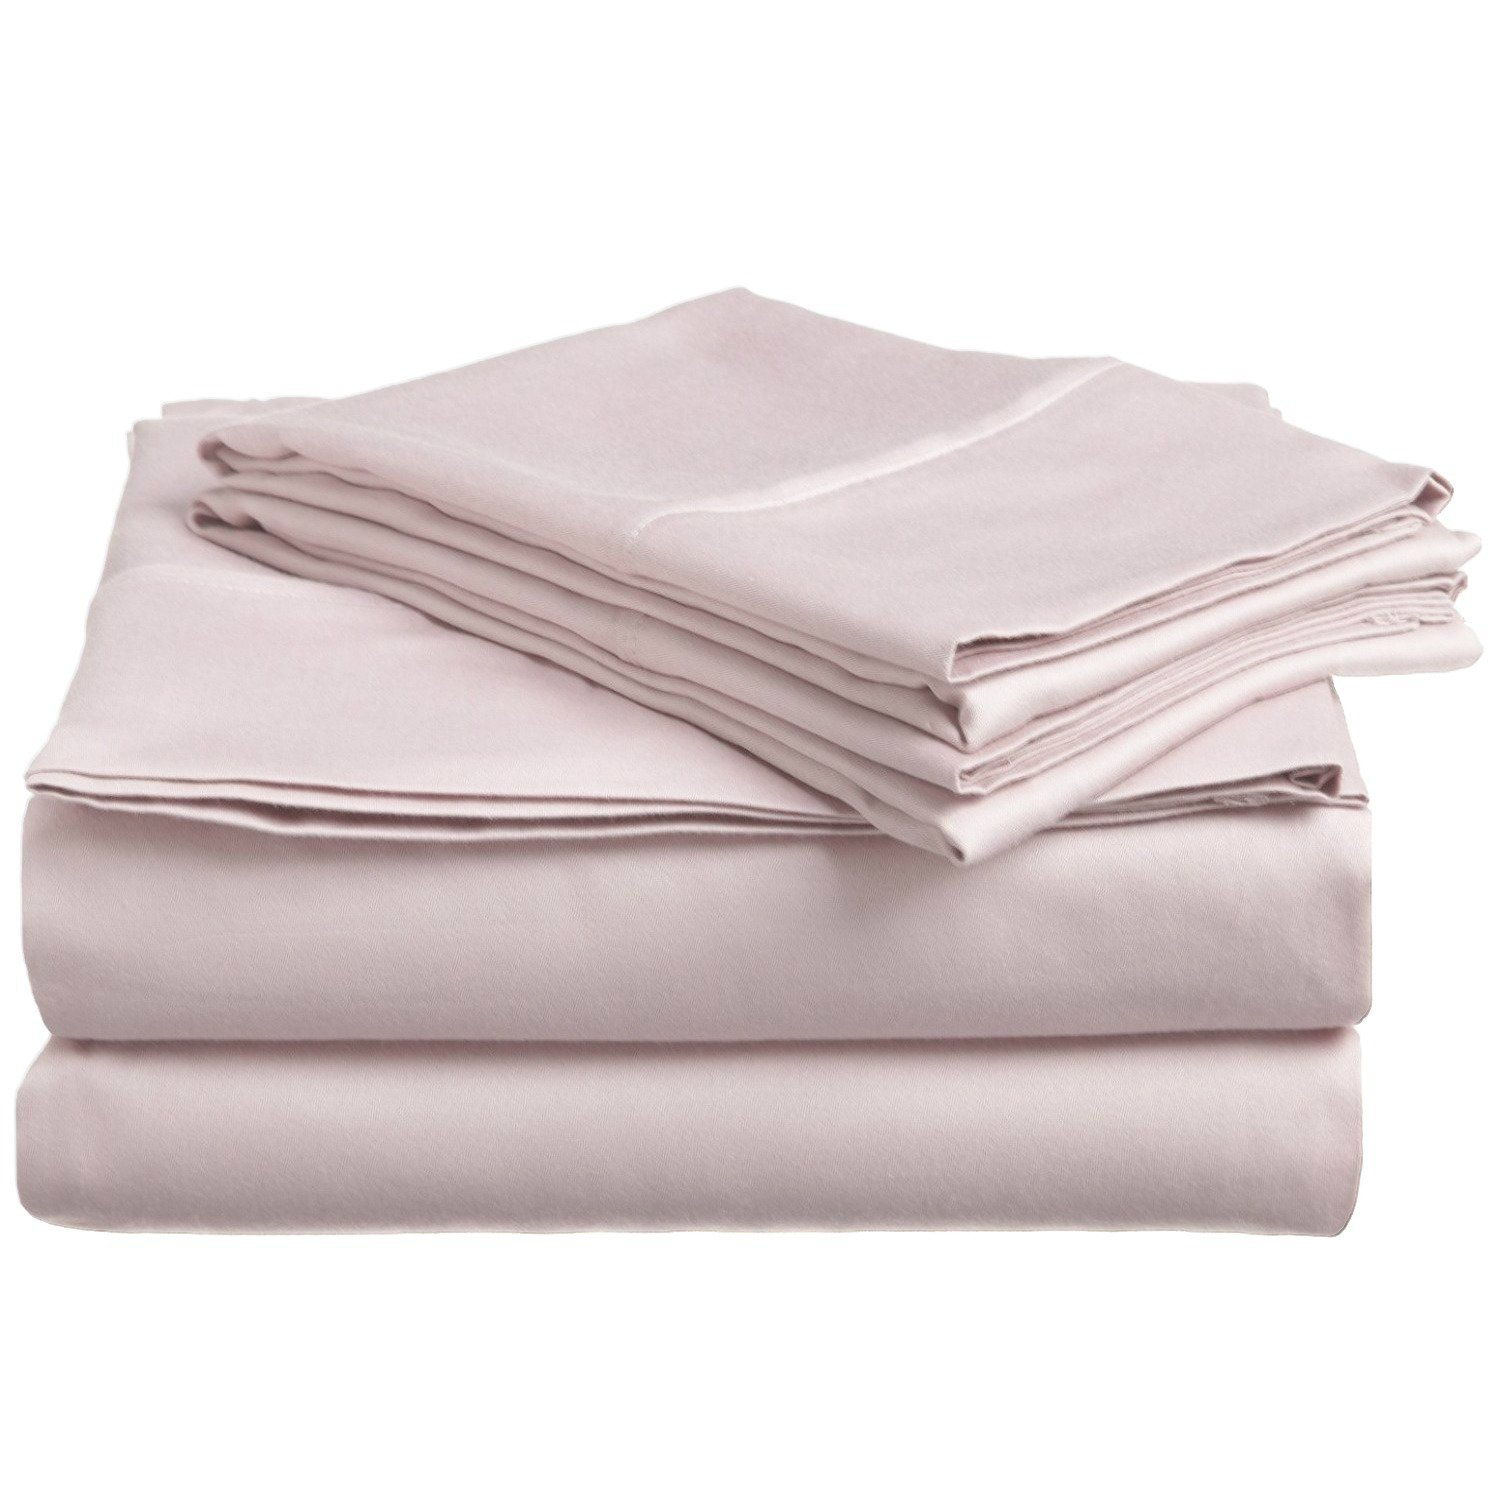 4 Piece Queen Lilac Bed Sheet Set, Ultra cozy, super soft, lightweight, durable, satiny smooth, Fully Elasticized, Sateen weave with 300 thread count, Light Purple, Cotton